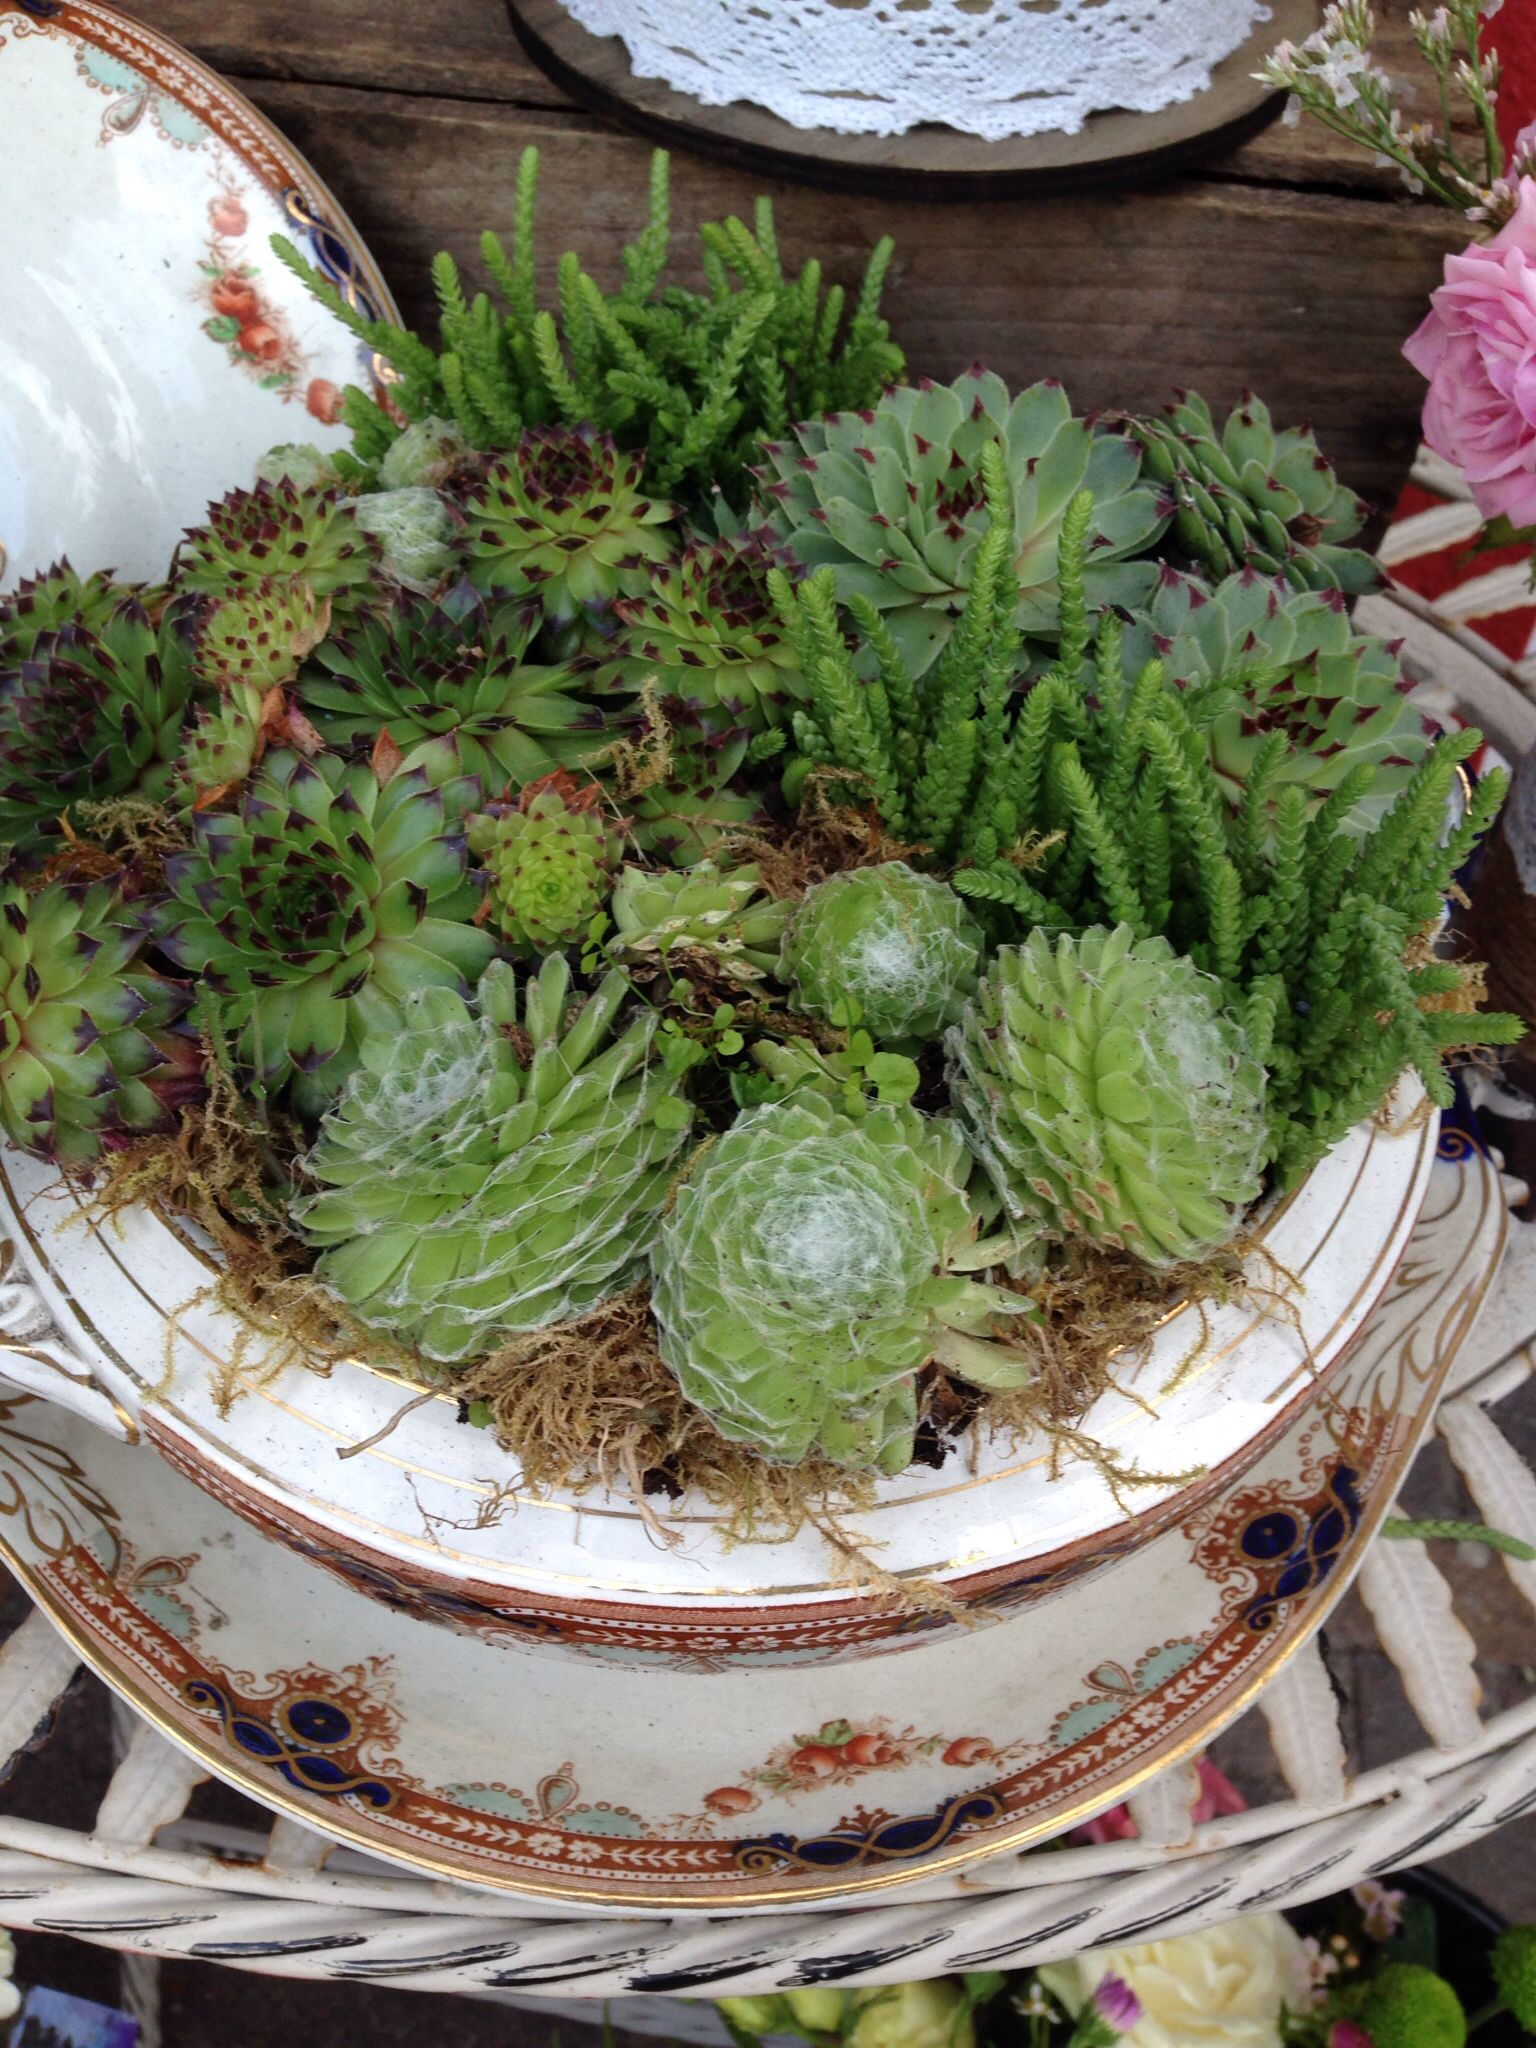 Beautifully planted in a vintage Tureen